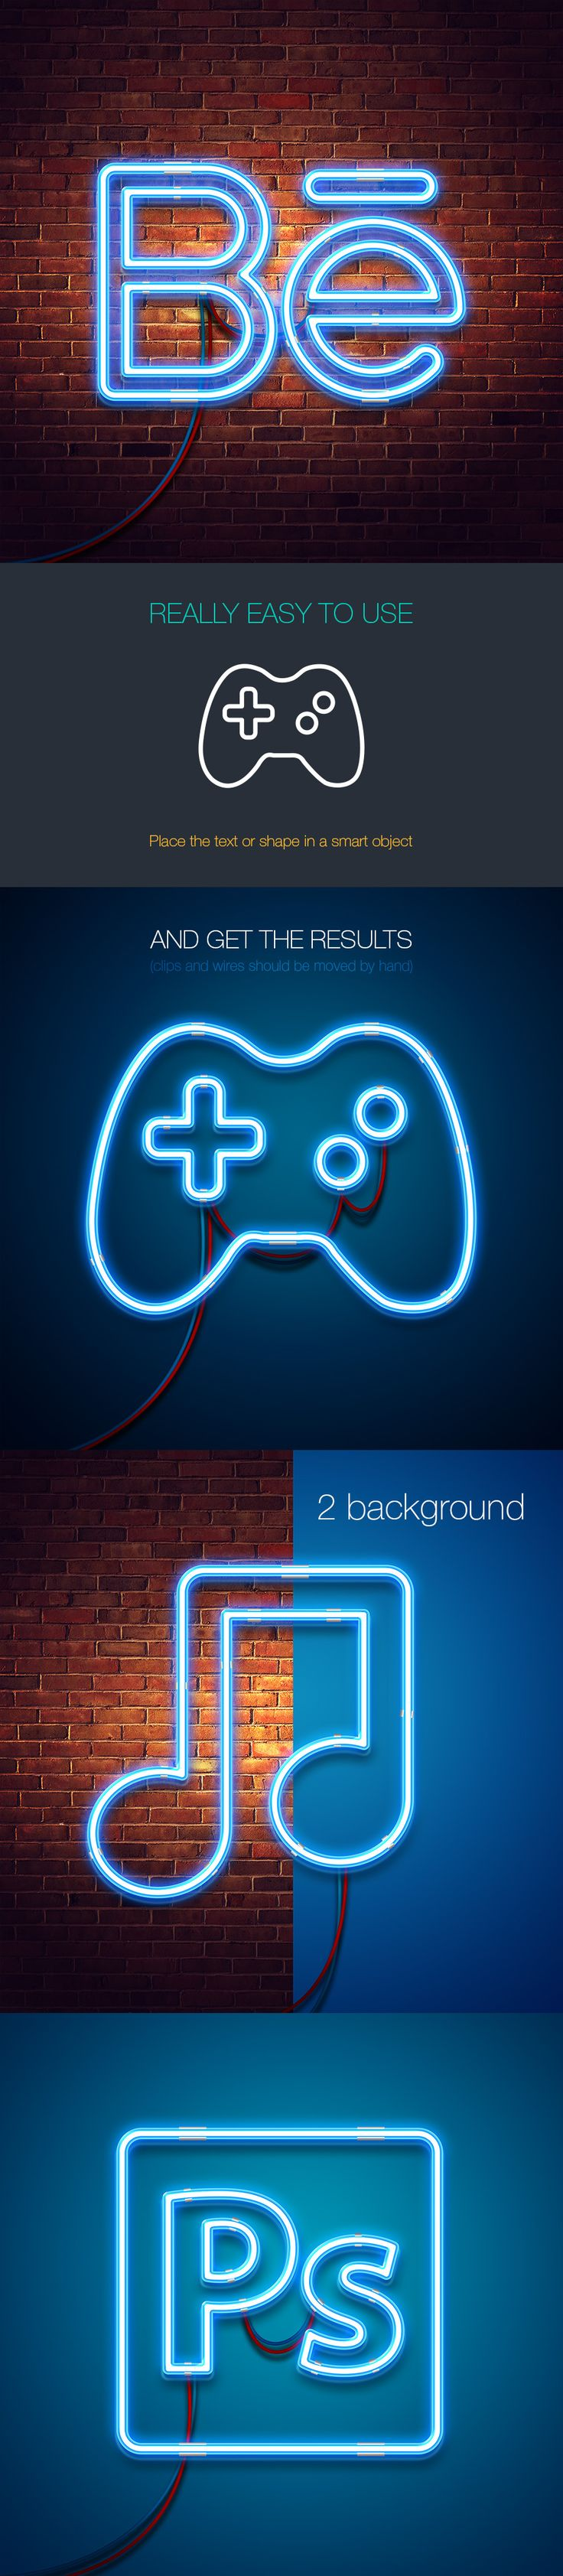 Free neon mock-up (33.7 MB) By Lil Bro on Behance | #free #photoshop #mockup #psd #neon